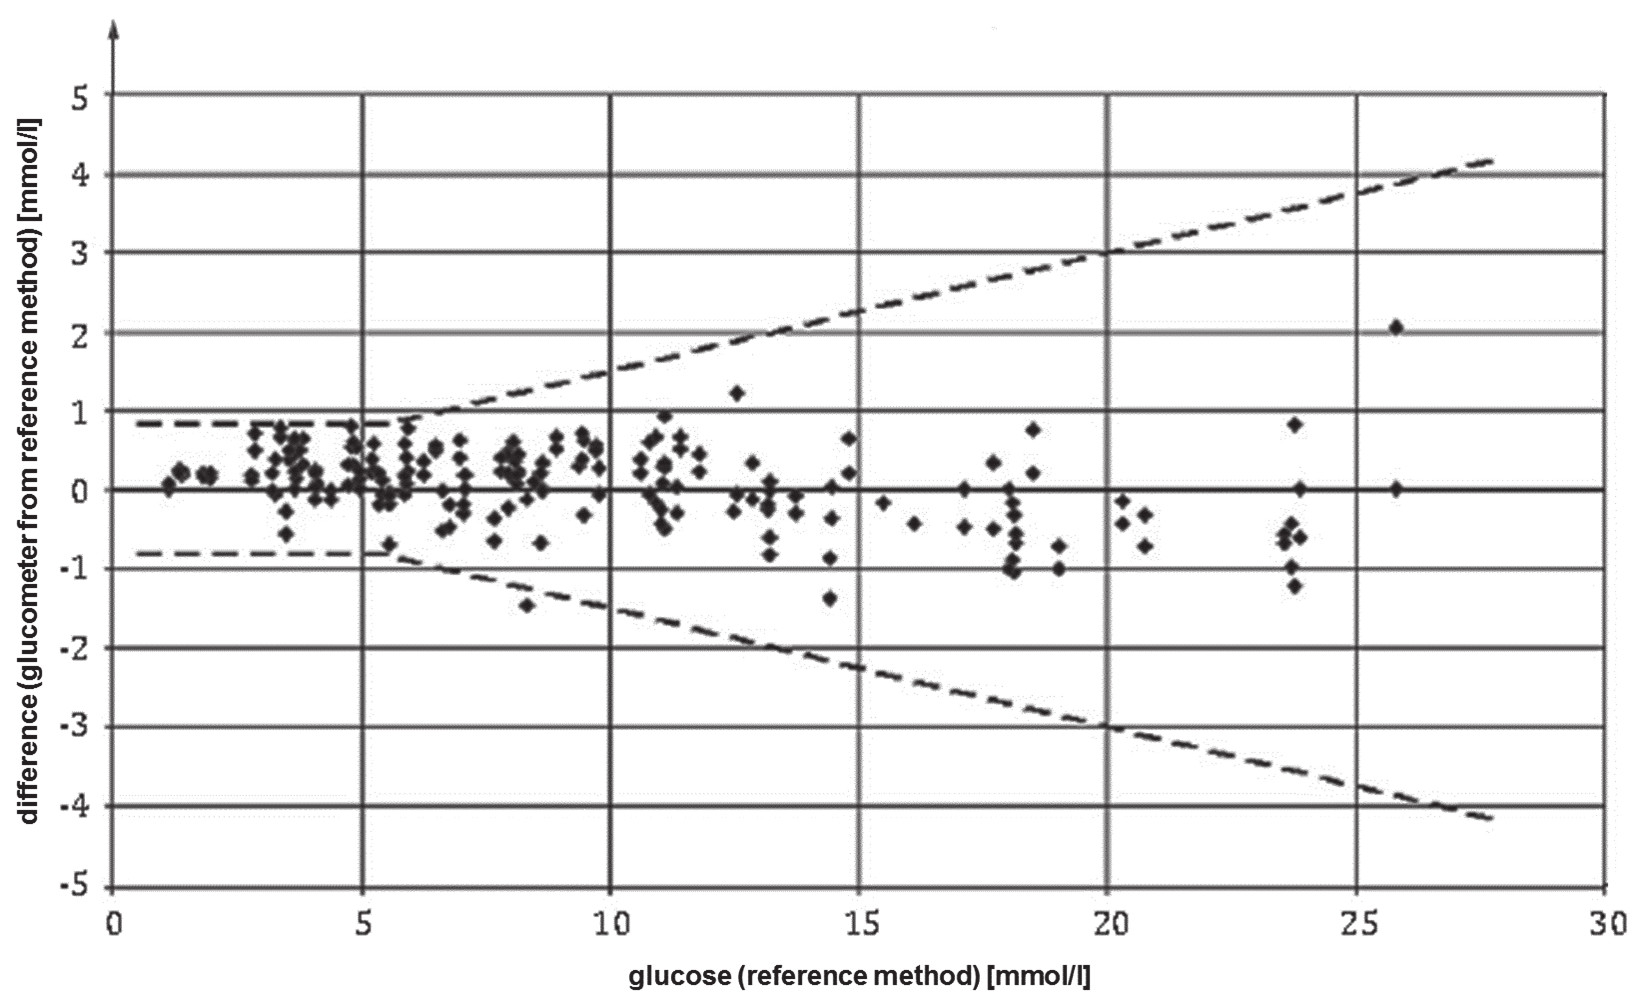 Fig. 1. Graphical presentation of differences glucometr results from reference method. Dashed lines show required maximal values of total errors according to ISO 15197:2013